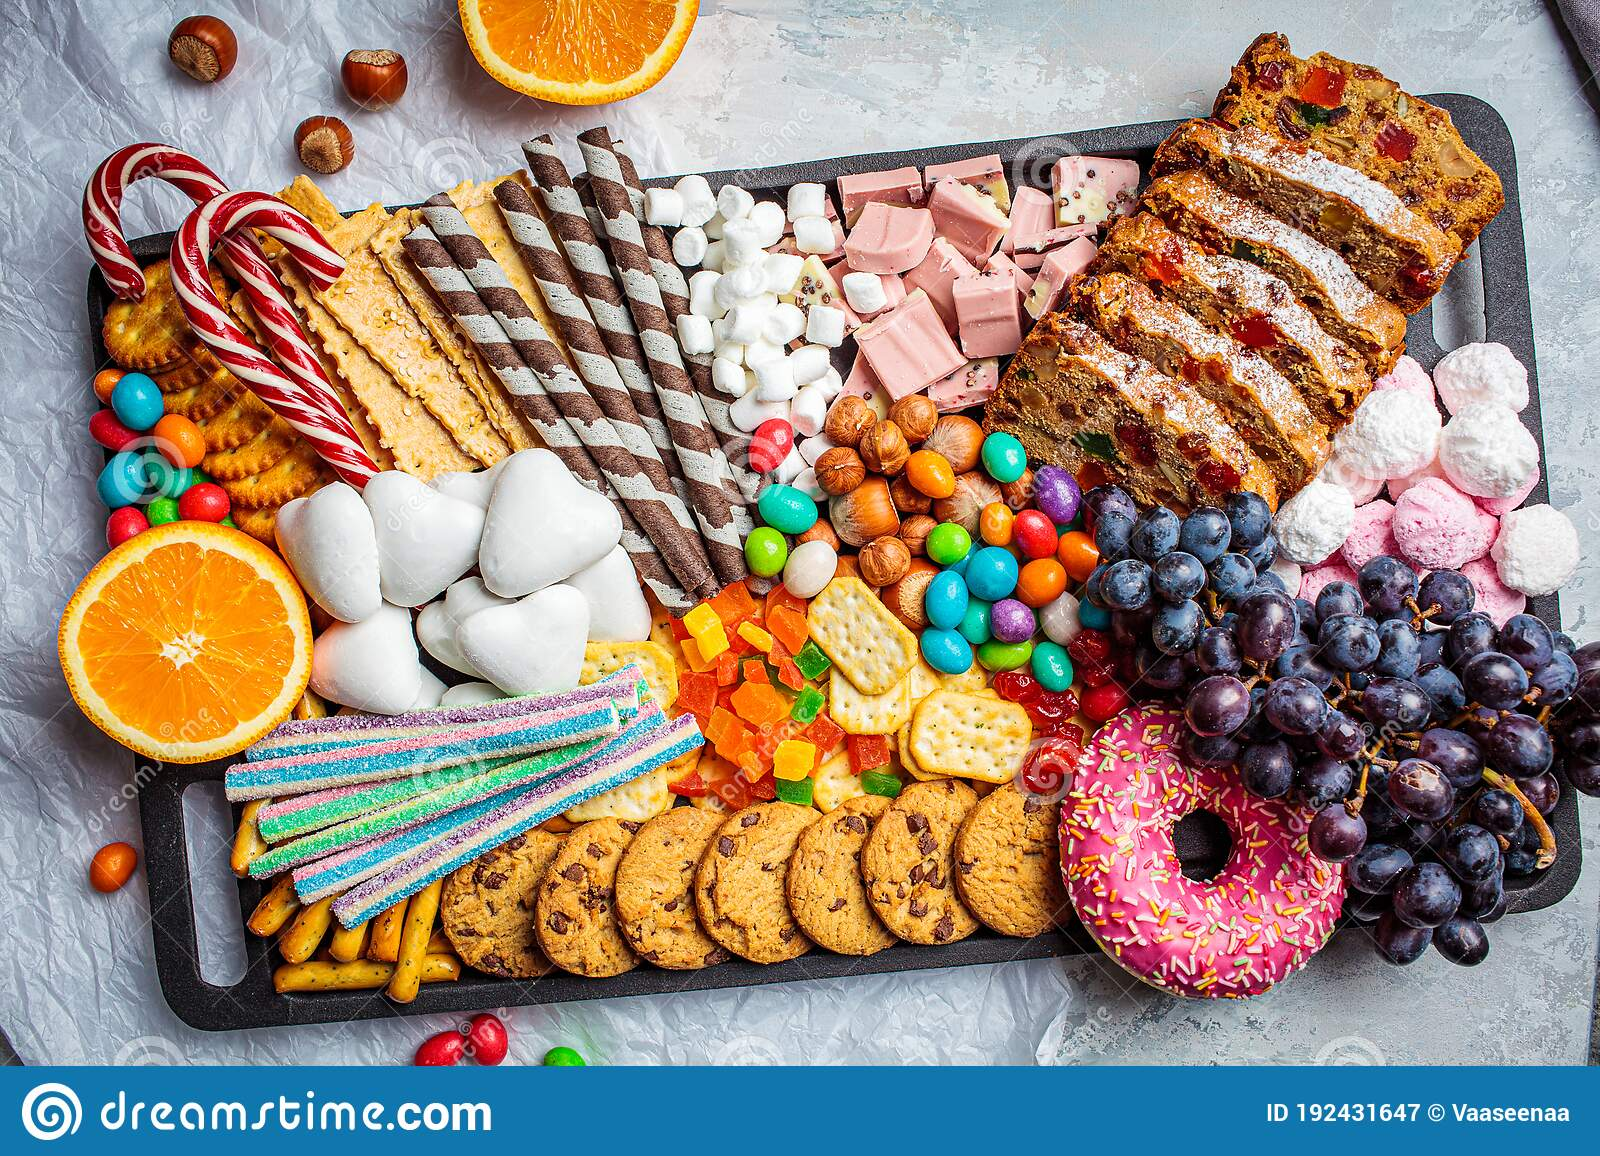 1 387 Sweets Platter Photos Free Royalty Free Stock Photos From Dreamstime